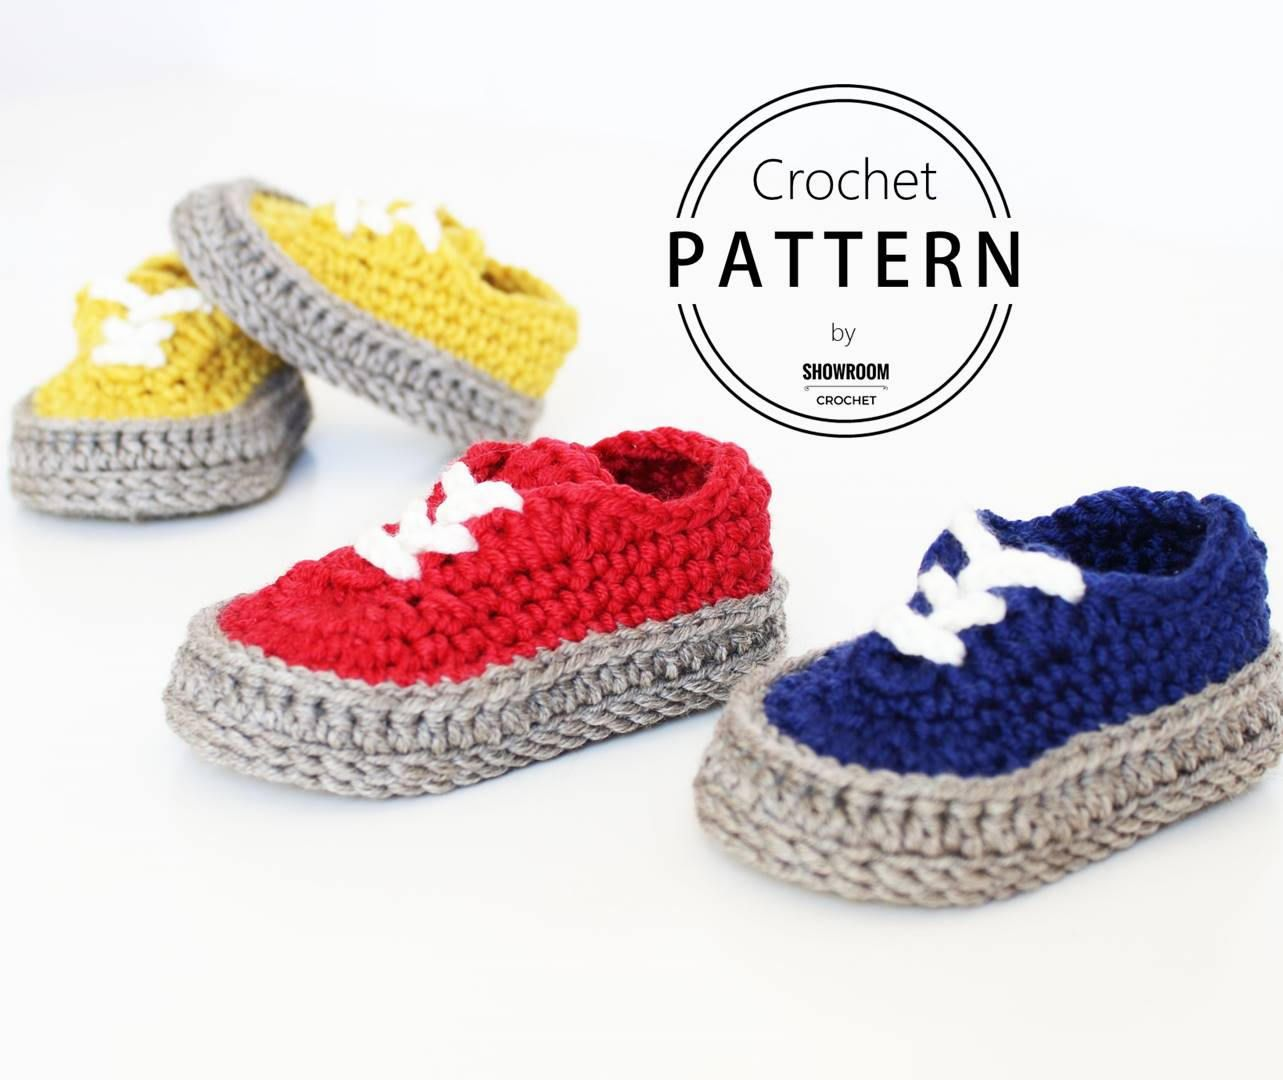 oOo___ Instant Download Pattern . This listing is for a PDF crochet ...